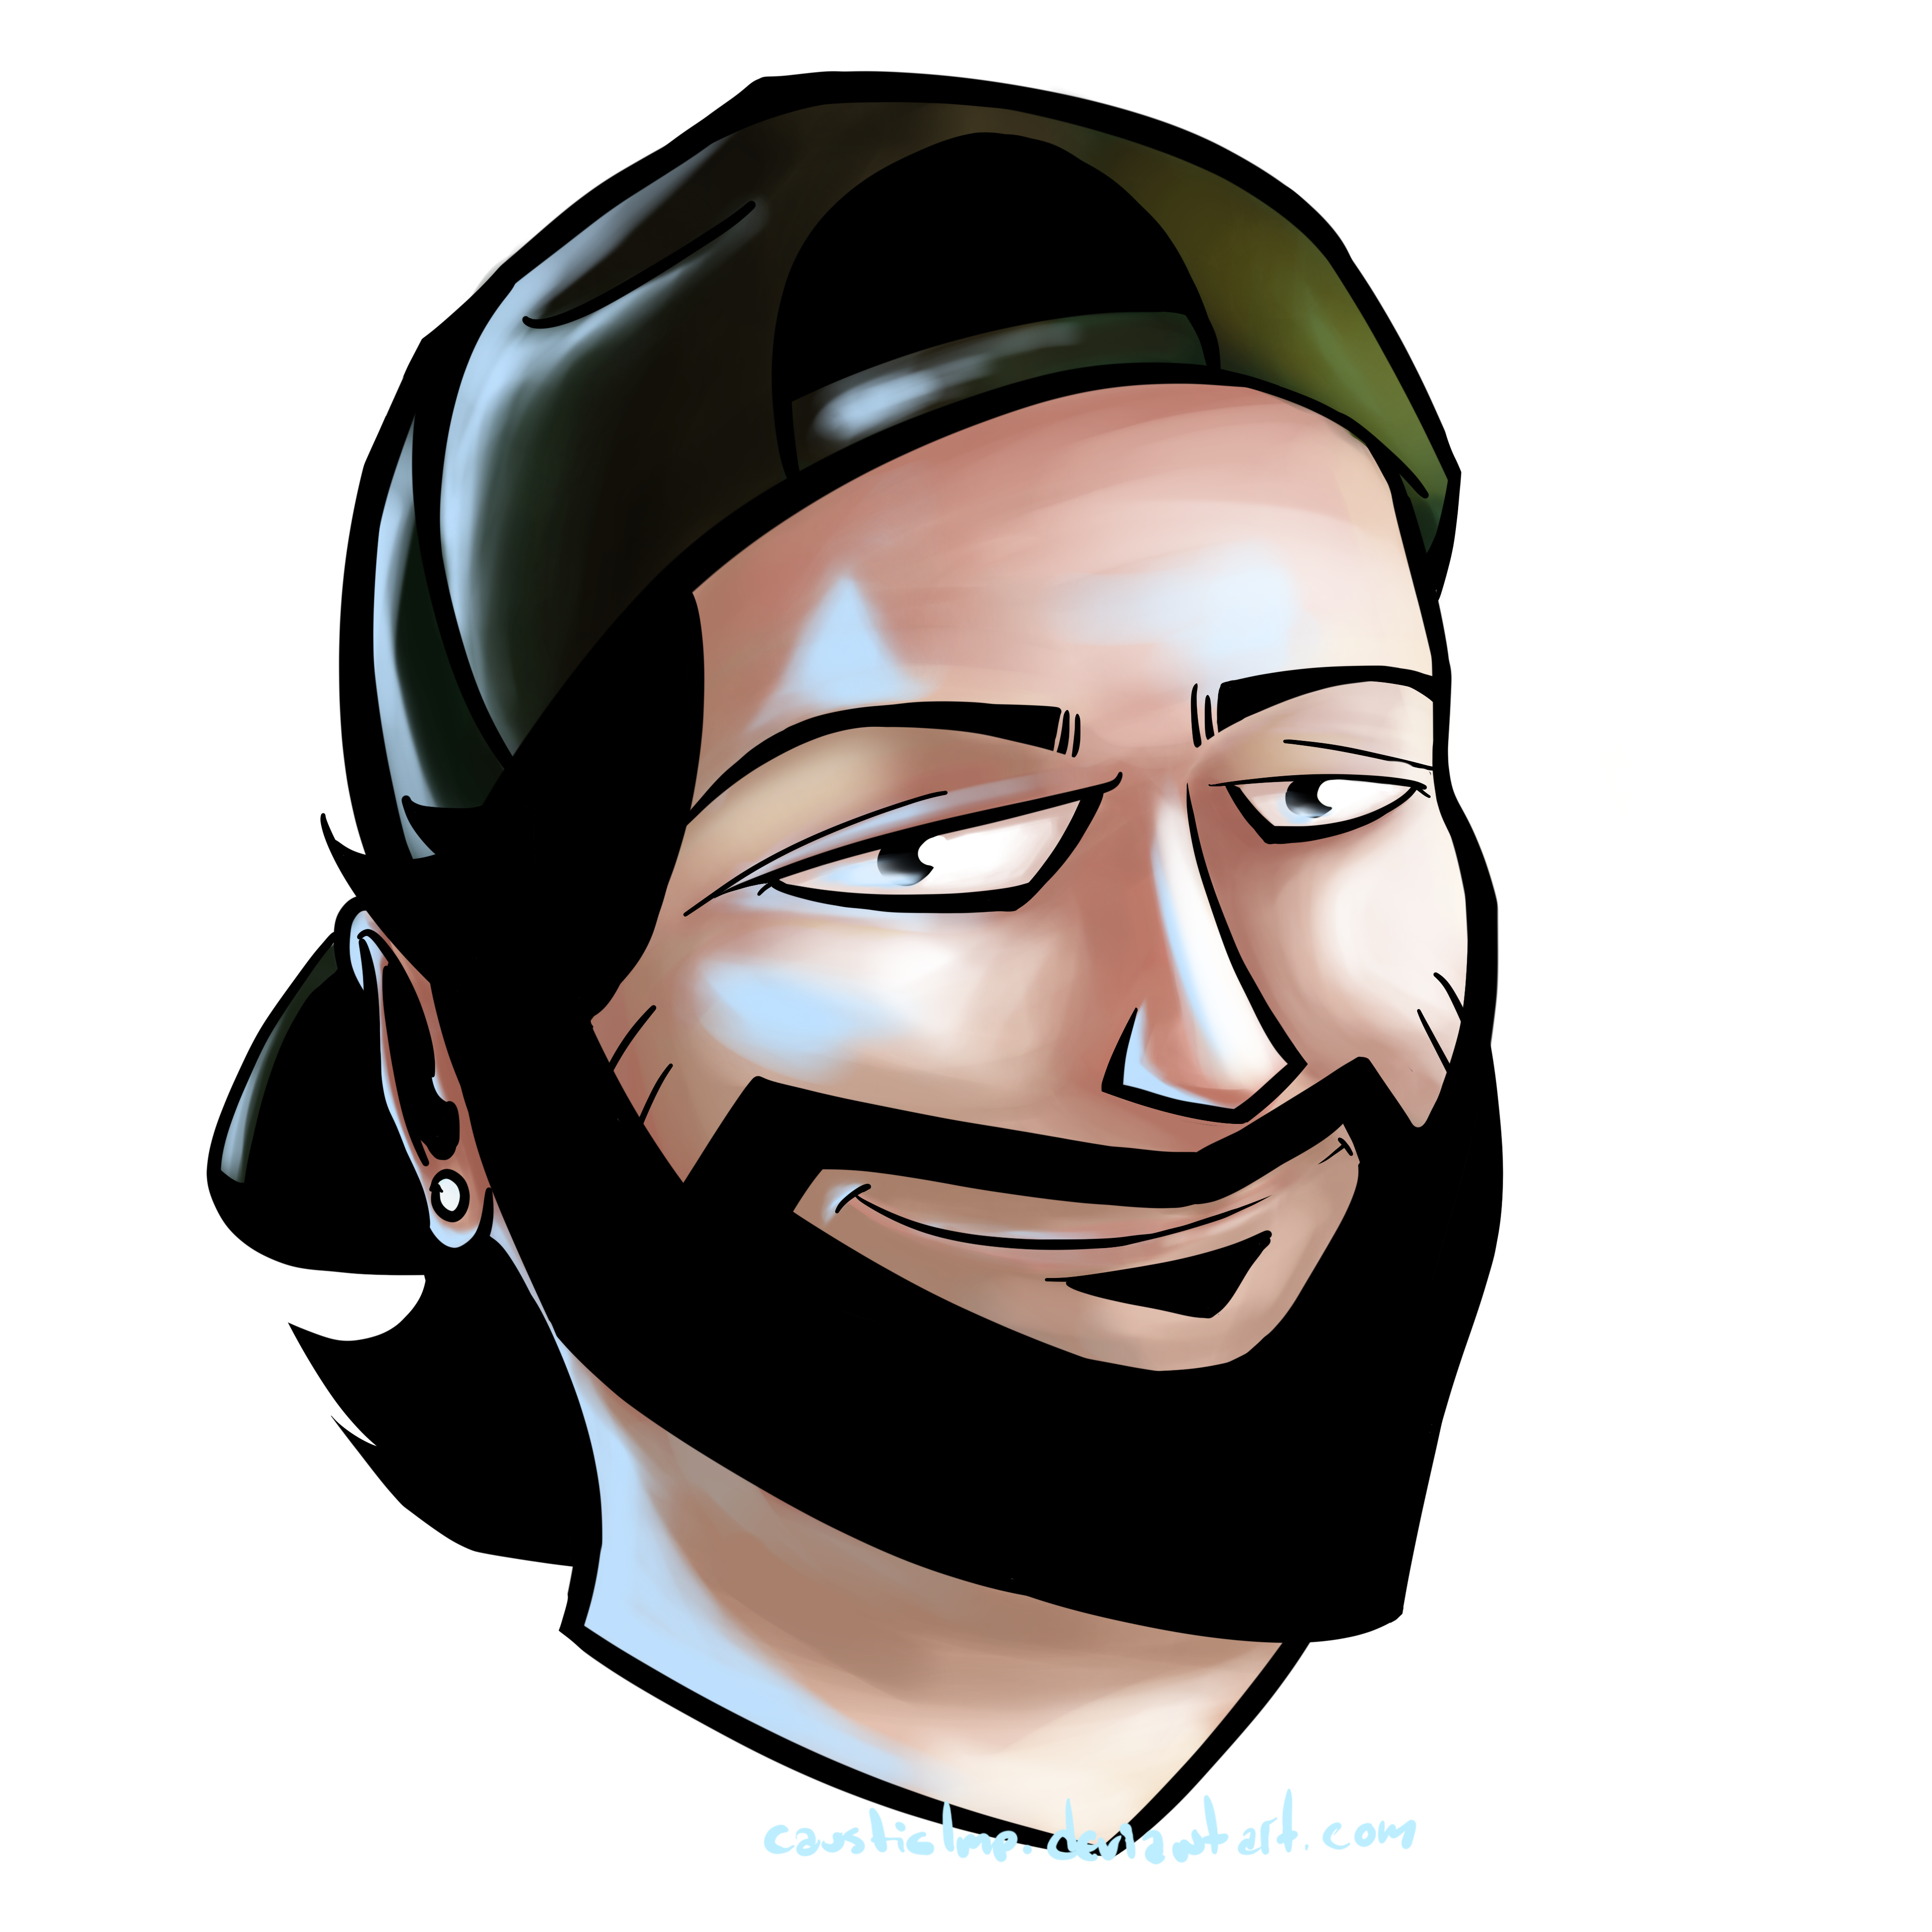 Commission of Icon/Avatar